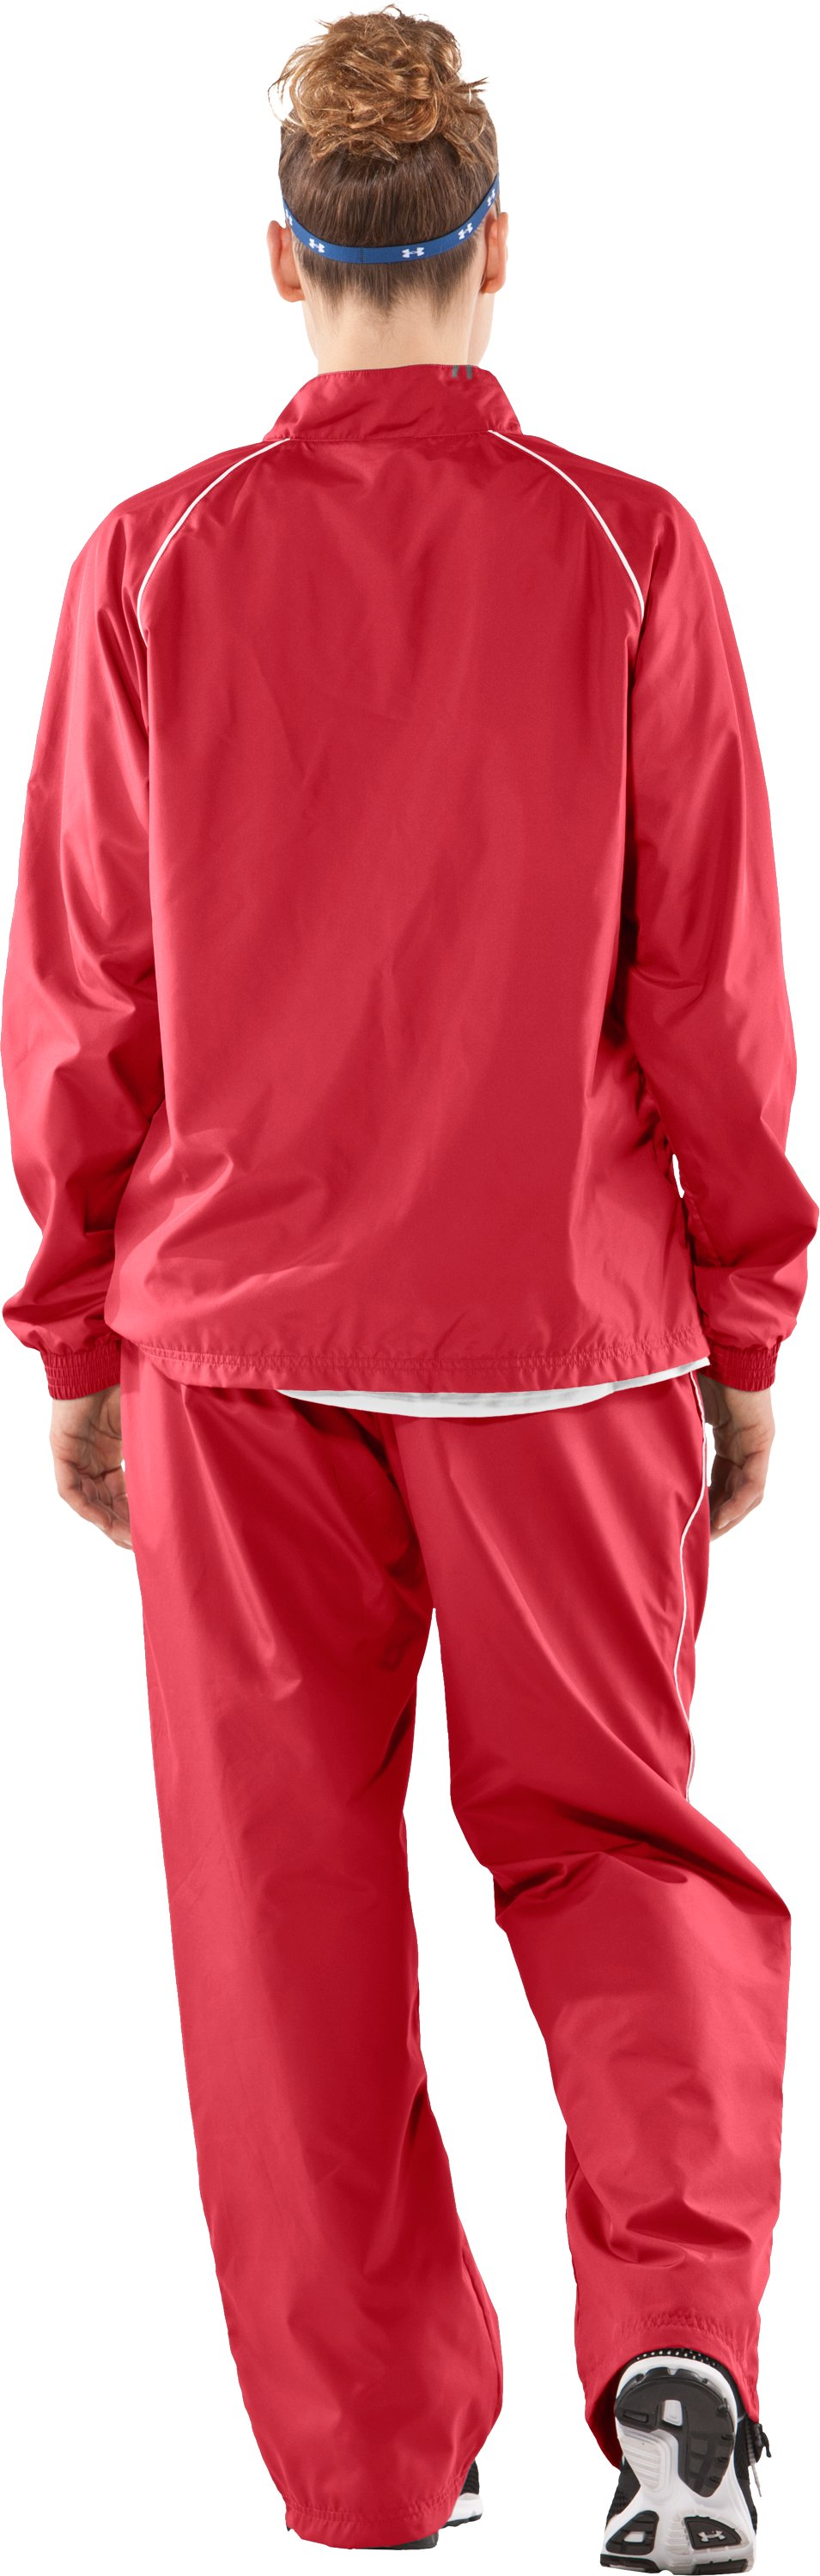 Women's Advance Woven Warm-Up Jacket, Red, Back